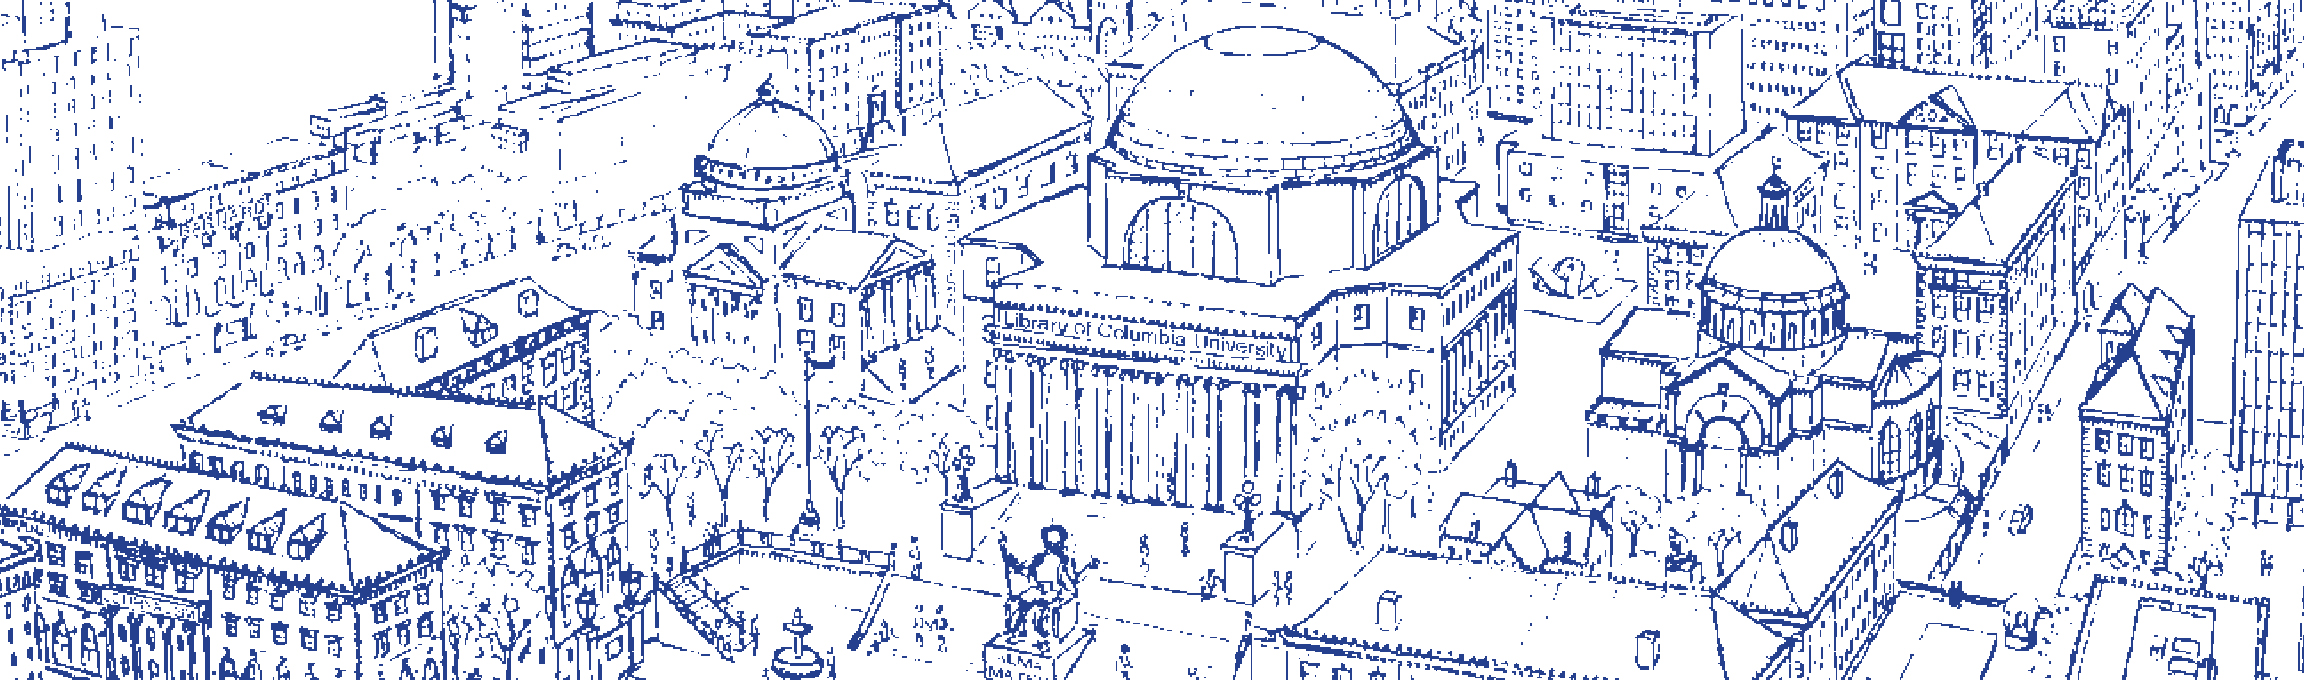 Sketch of Columbia Campus